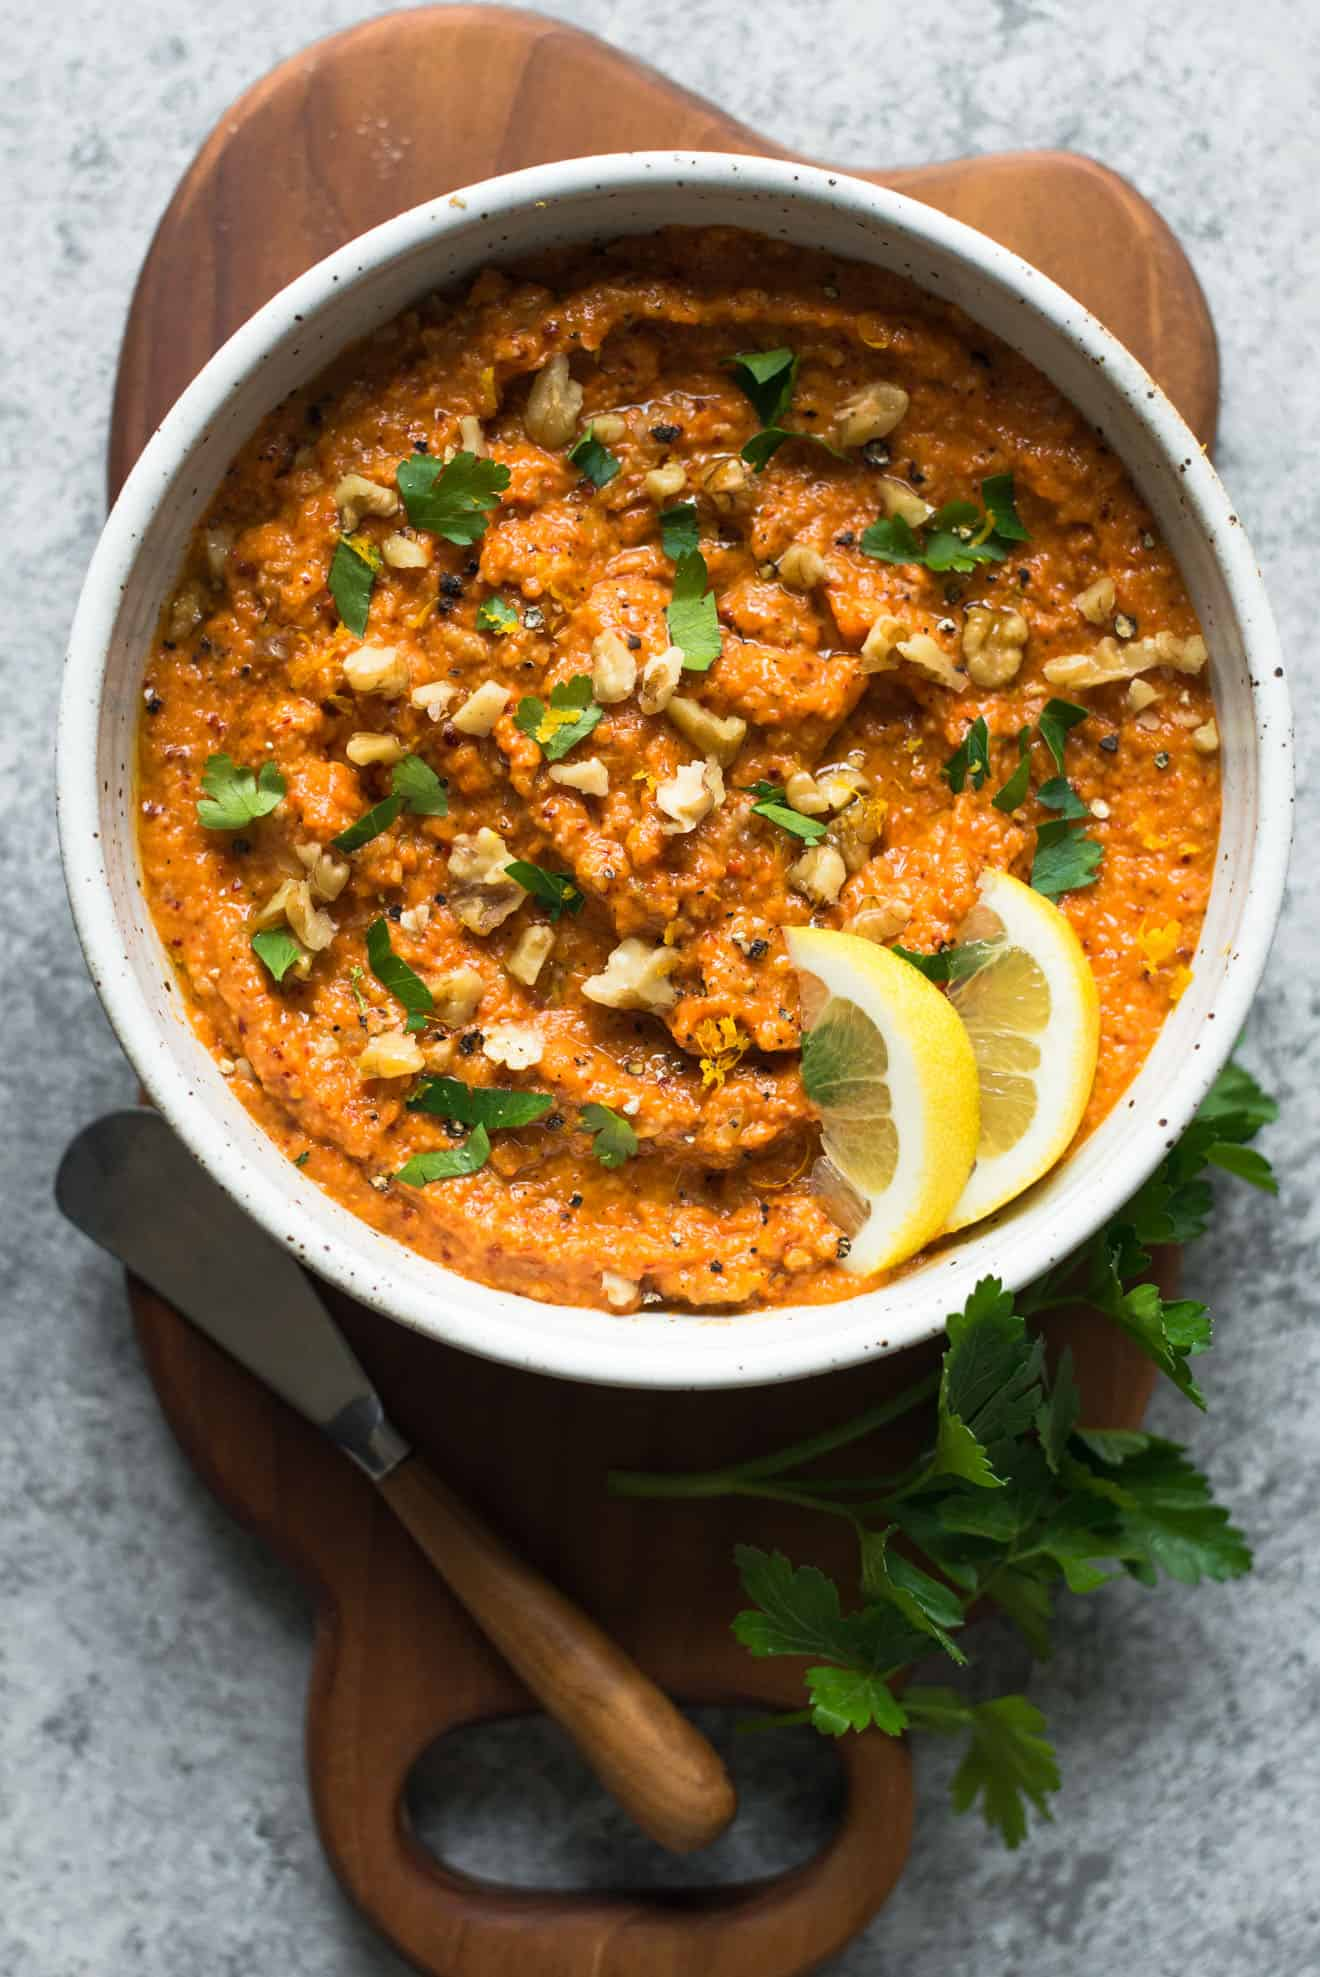 Gluten-Free Muhammara - this tasty, low fat Middle Eastern dip is filled with tangy and sweet flavors. Perfect for gatherings!